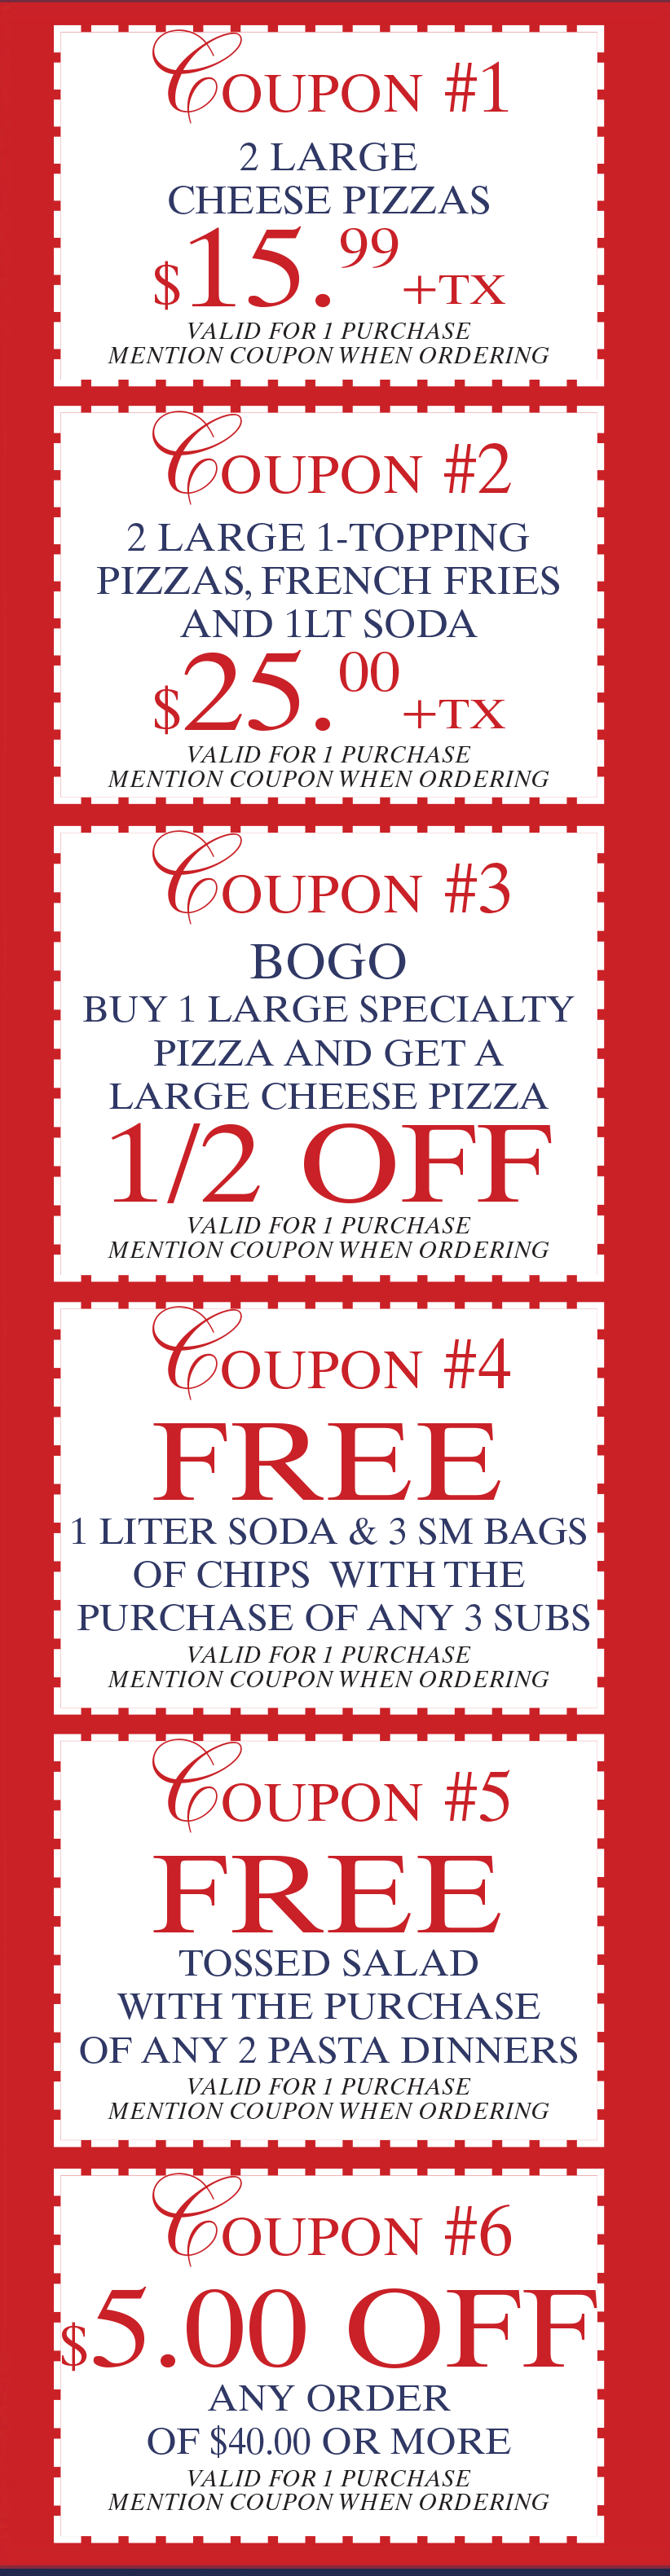 All coupons are valid for 1 purchase. Mention all coupons when ordering. Coupon #1 – 2 Large Cheese Pizzas for $15.99 plus tax. Coupon #2 – 2 large 1 topping pizzas, French fries and a 1liter soda for $25 plus tax. Coupon #3 – Buy 1 large specialty pizza and get a large cheese pizza half off. Coupon #4 – Free 1liter soda and 3 small bags of chips with the purchase of any 3 subs. Coupon #5 – Free tossed salad with the purchase of any 2 pasta dinners. Coupon #6 - $5 off any order of $40 or more.